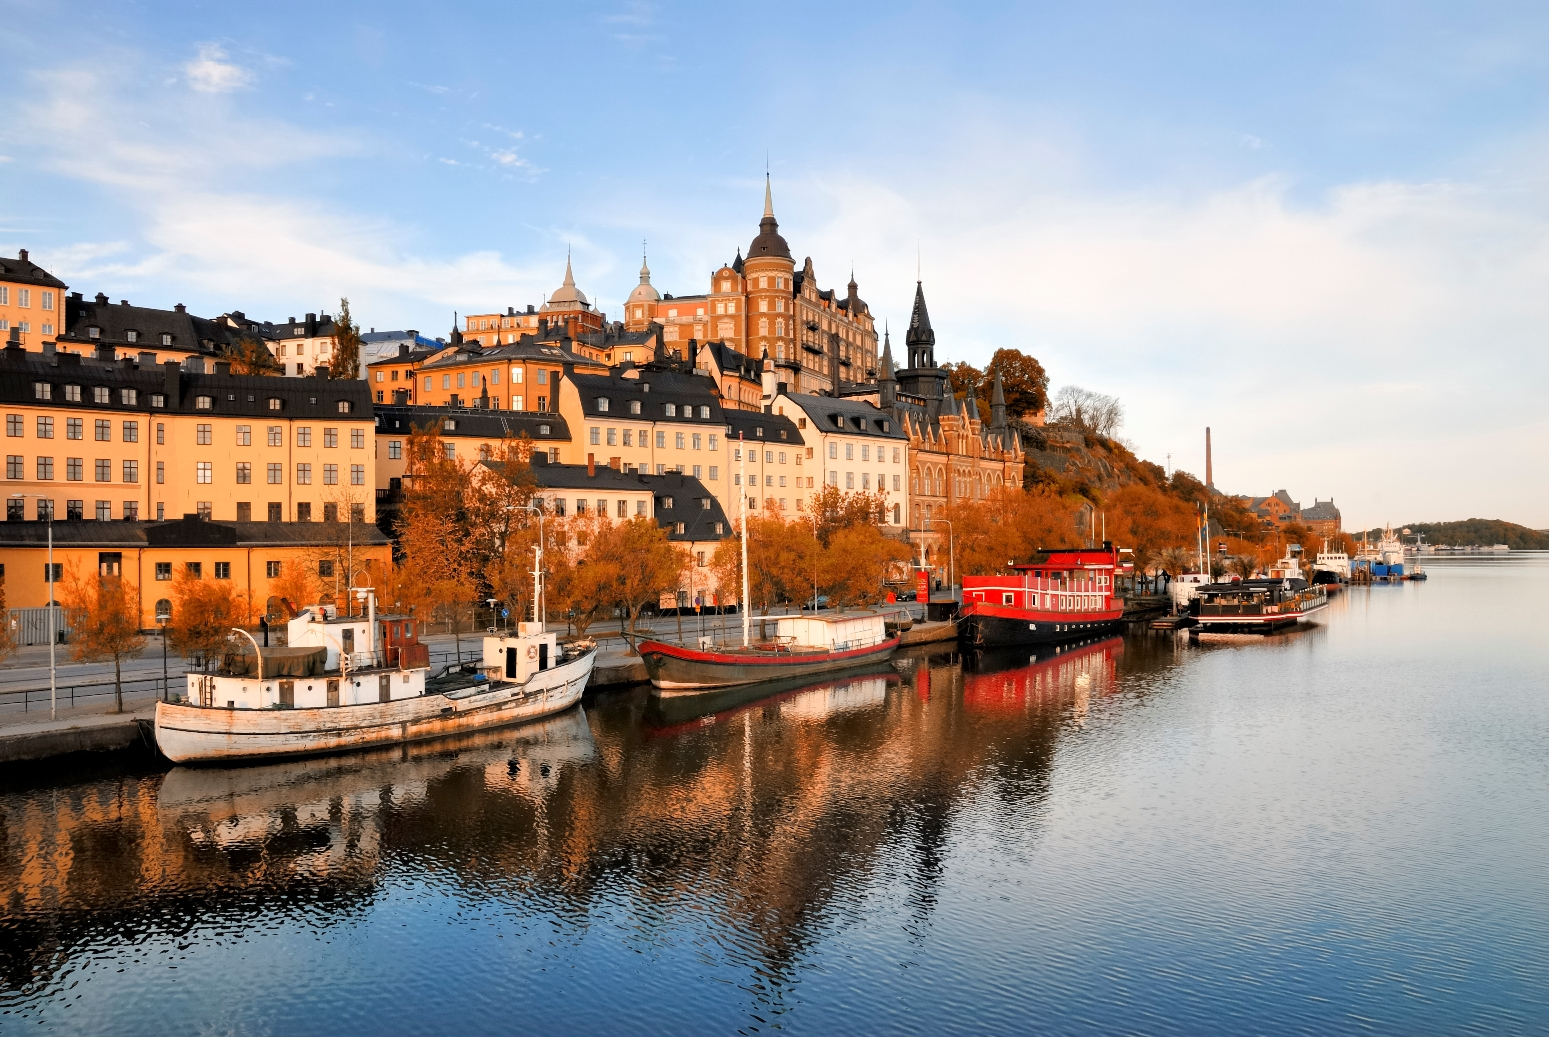 sweden_stockholm_embankment_with_boats_istock_000015271055large.jpg